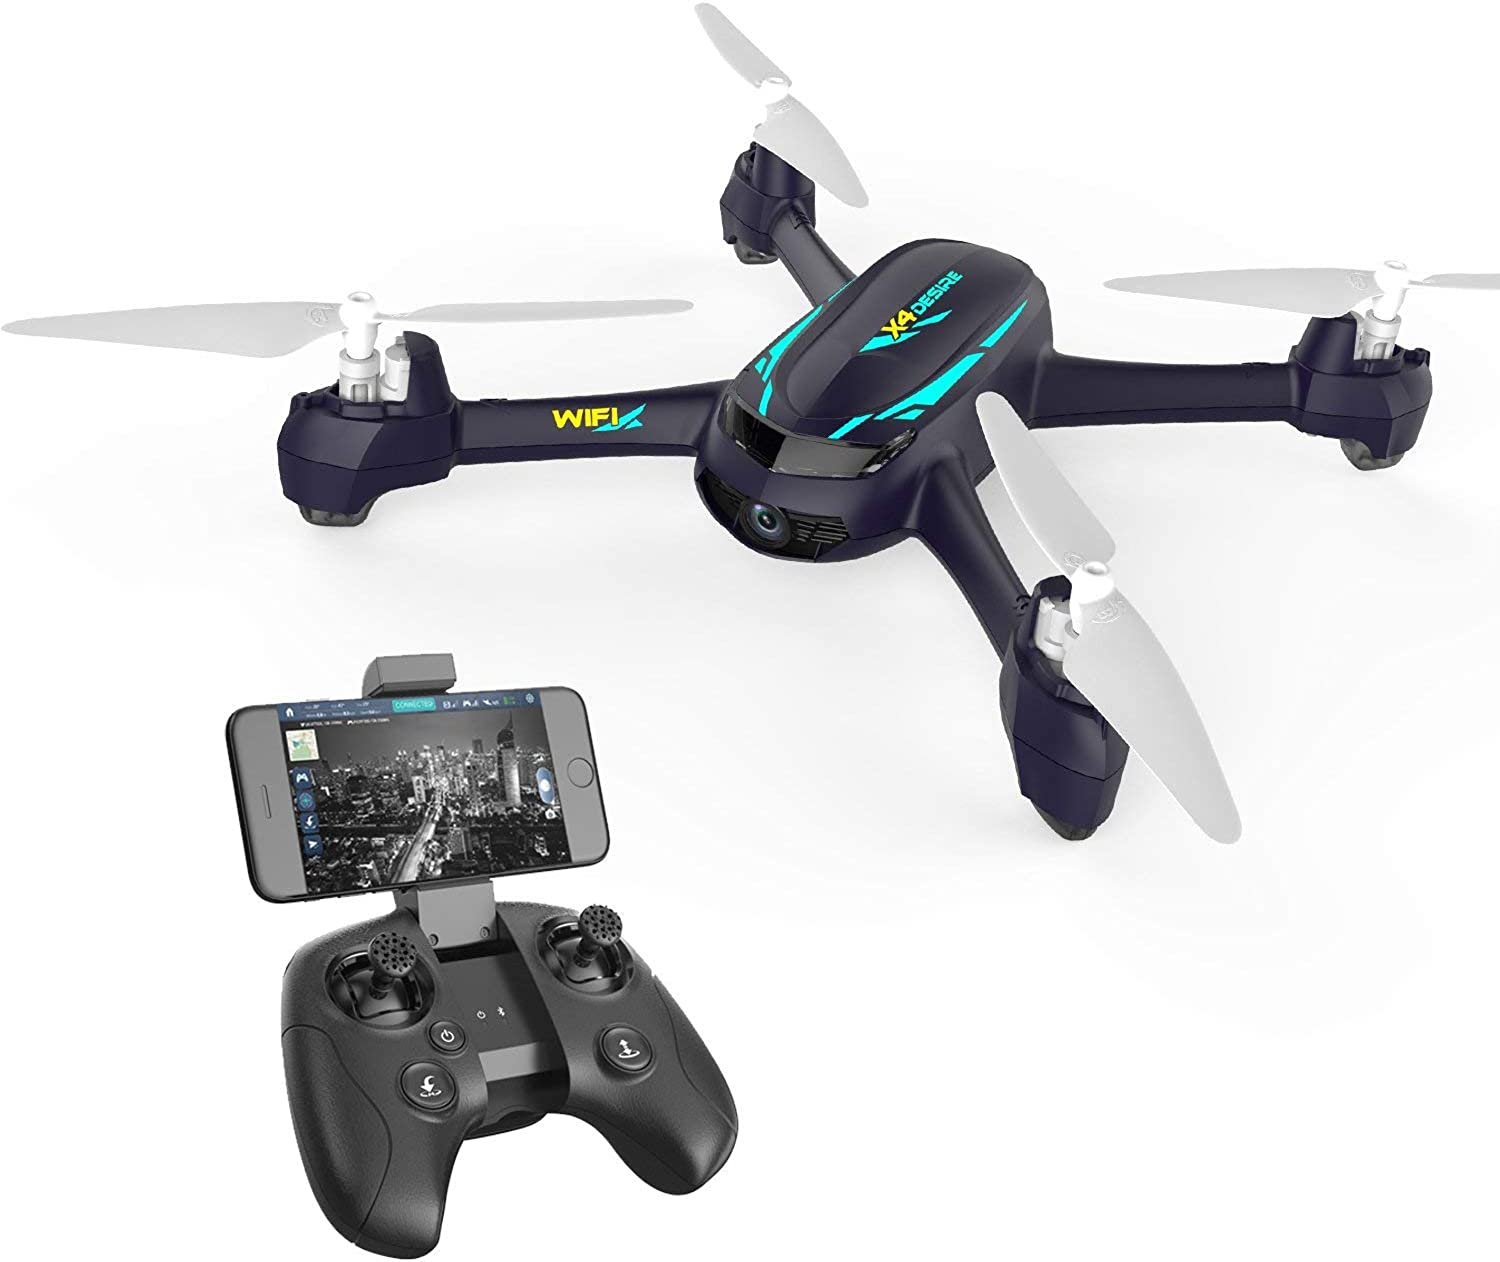 Drone with HD Camera Remote Control Helicopter WiFi APP Control Headless Mode GPS with me